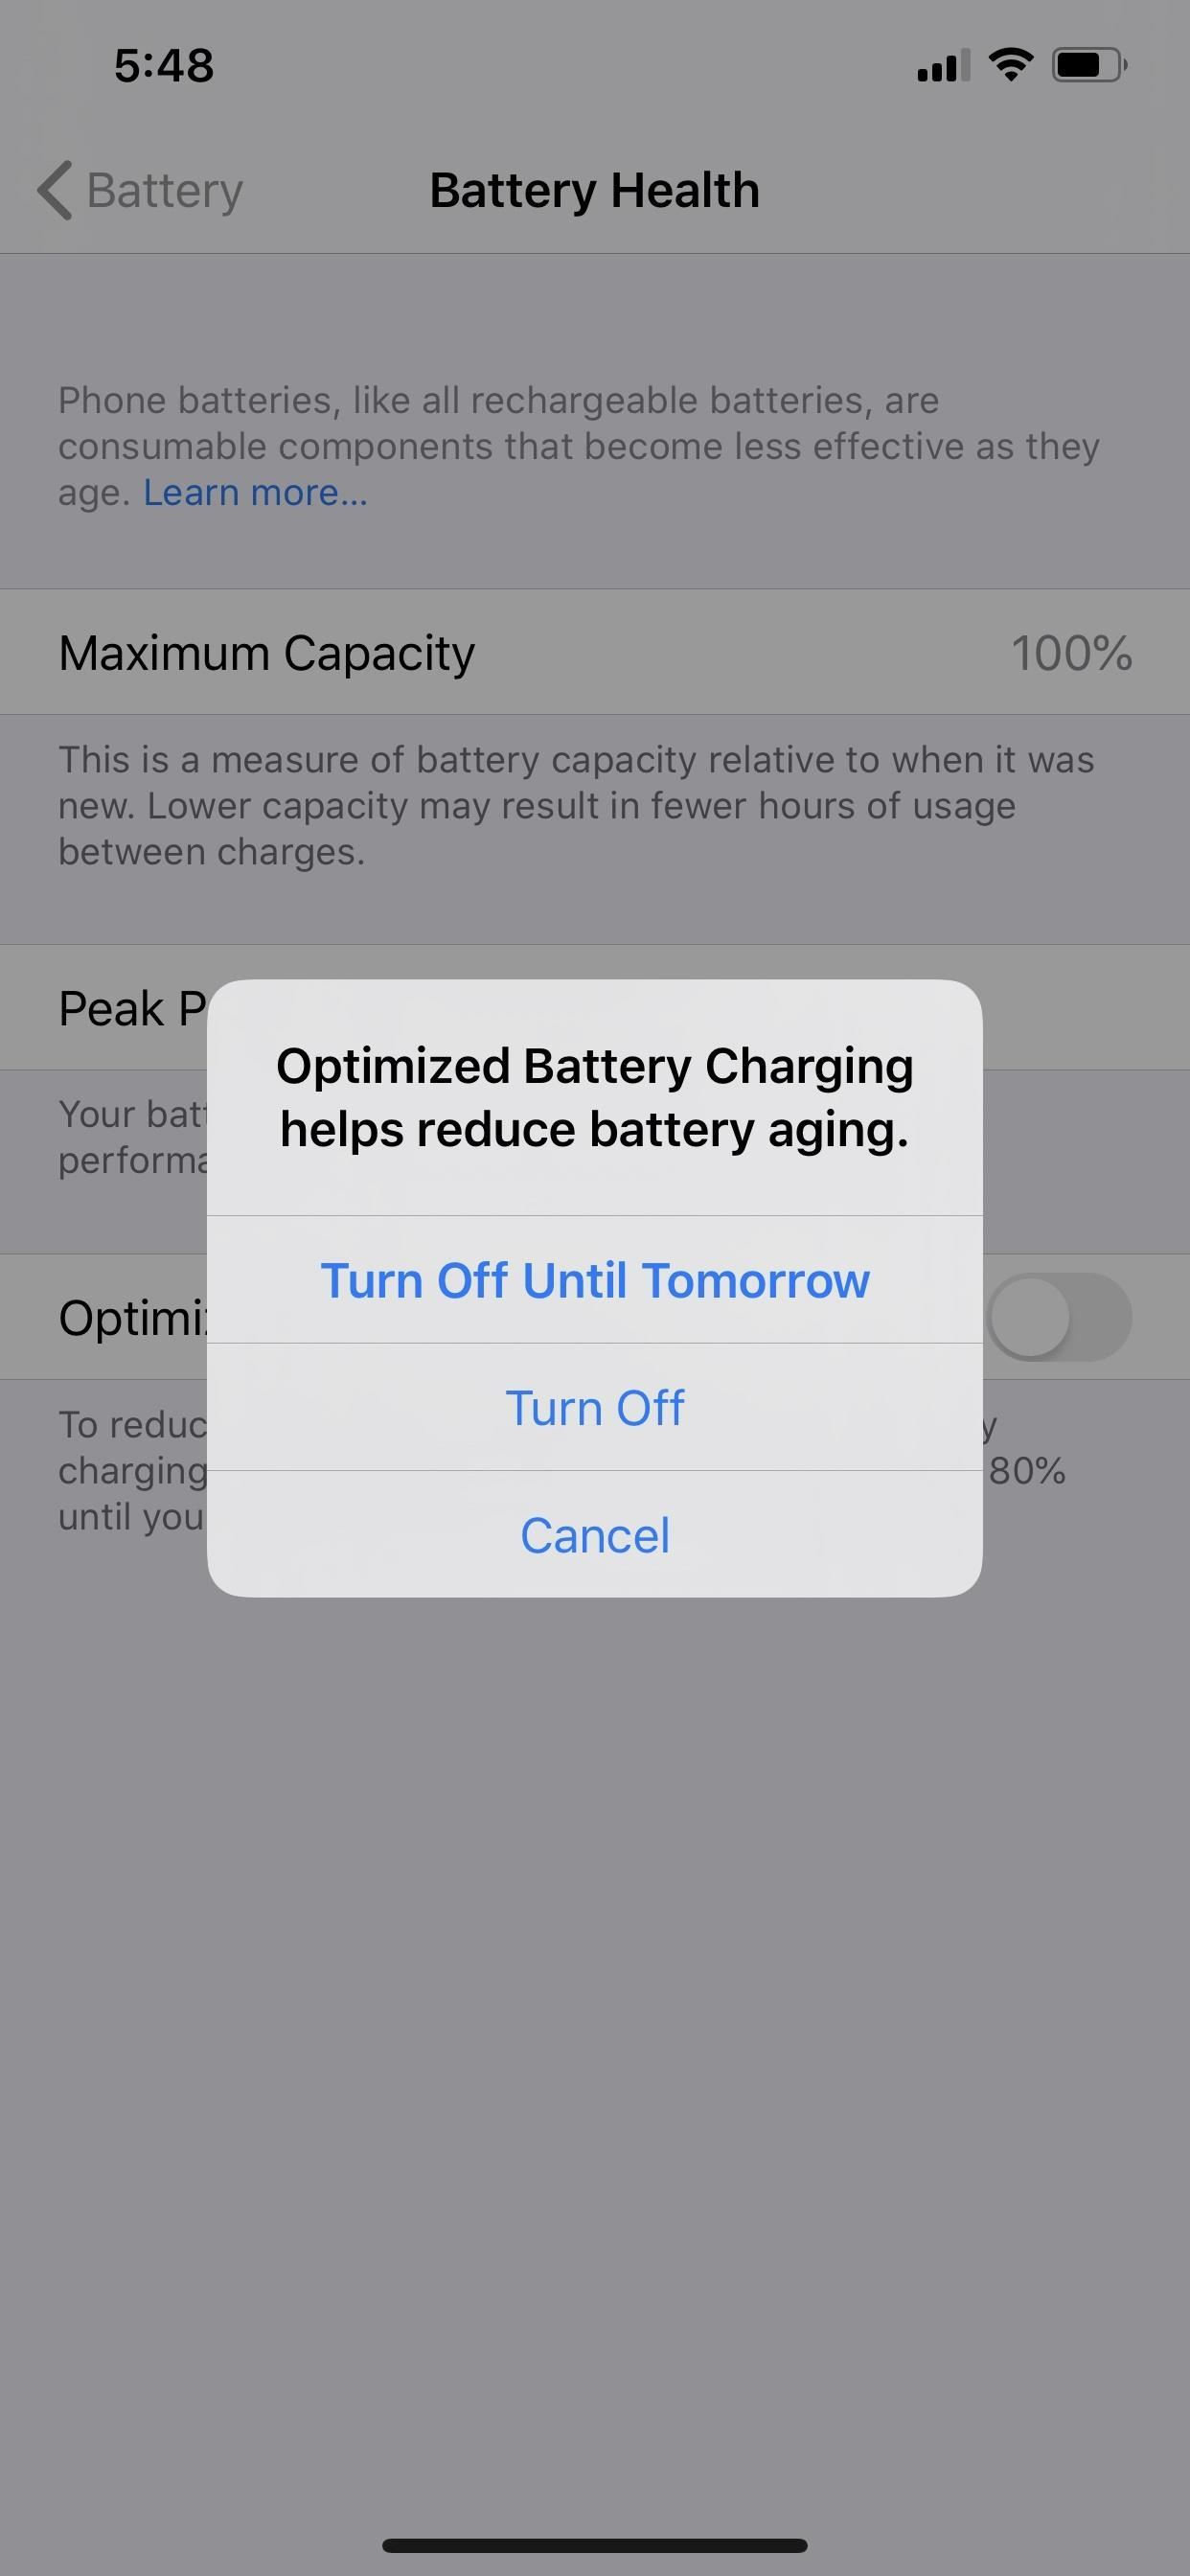 iPhone Not Charging Past 80%? Here's Why (& How to Fix It)